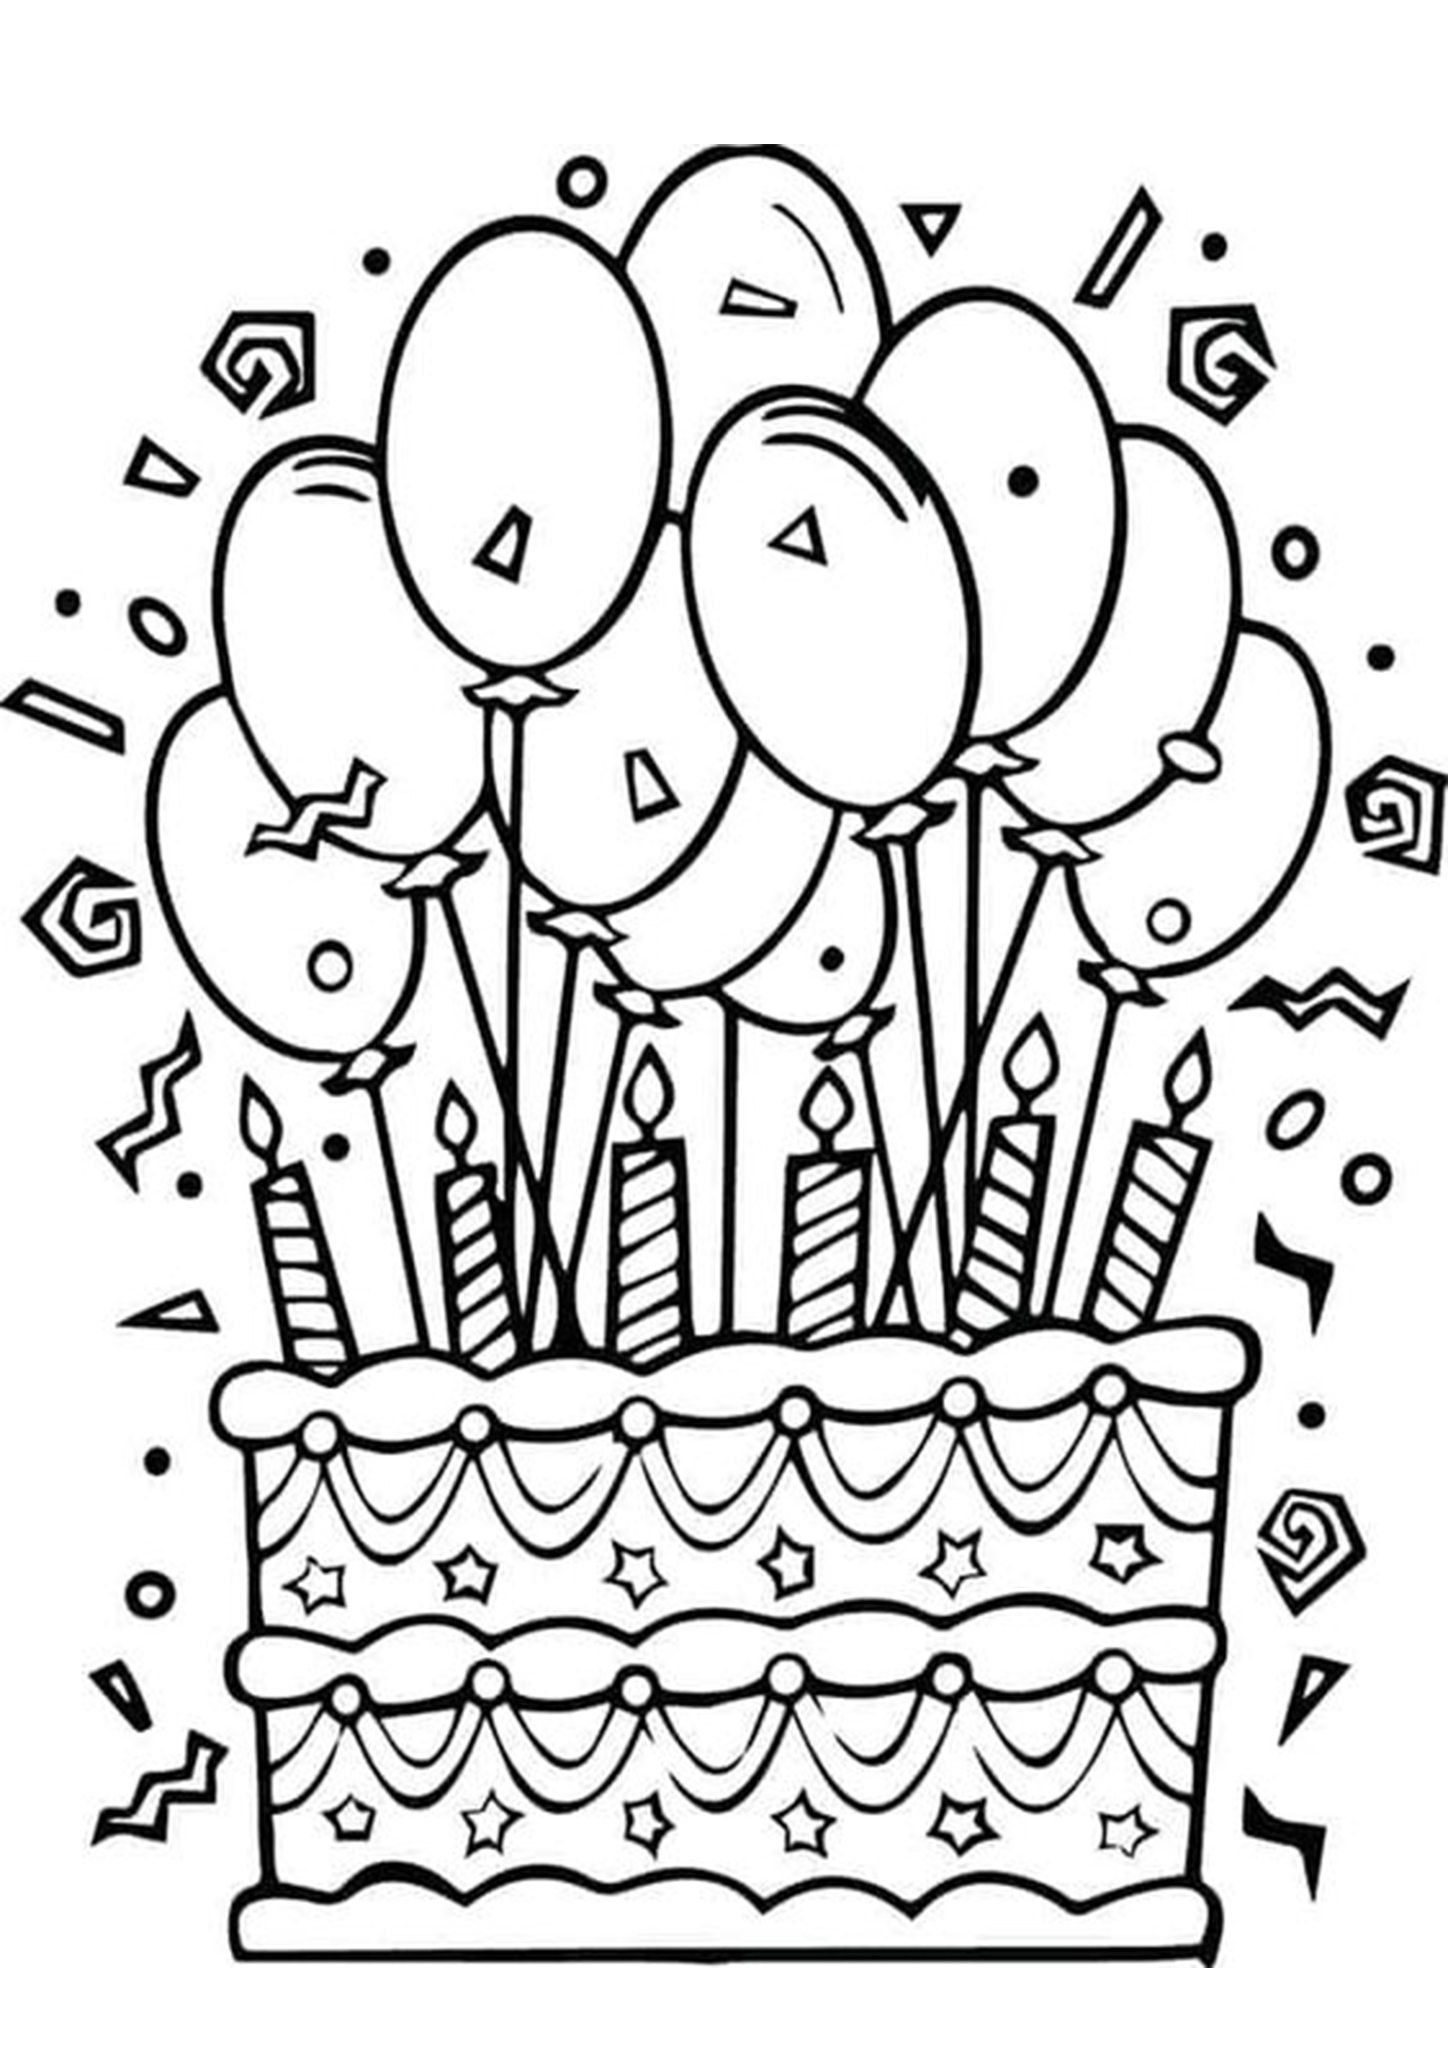 Happy Birthday Coloring Pages Free Easy To Print Tulamama Cake Printable  For Kids 16th – Slavyanka